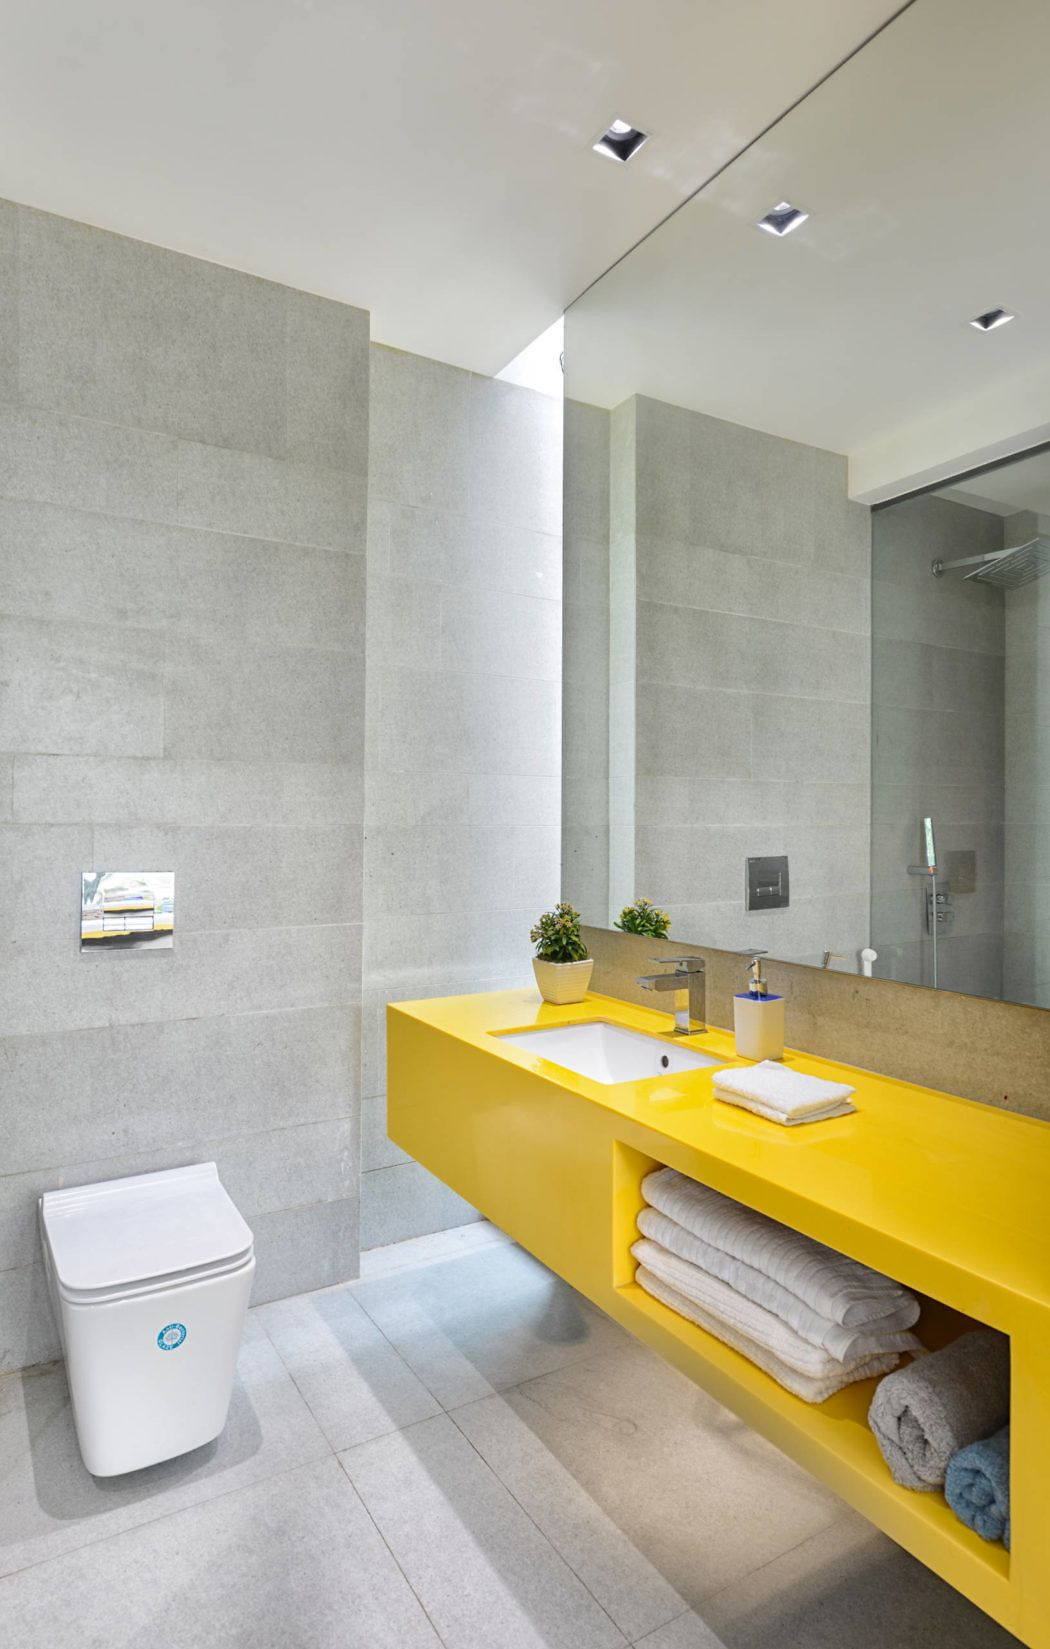 residence in india by s a k designs interior bathroom design rh pinterest com